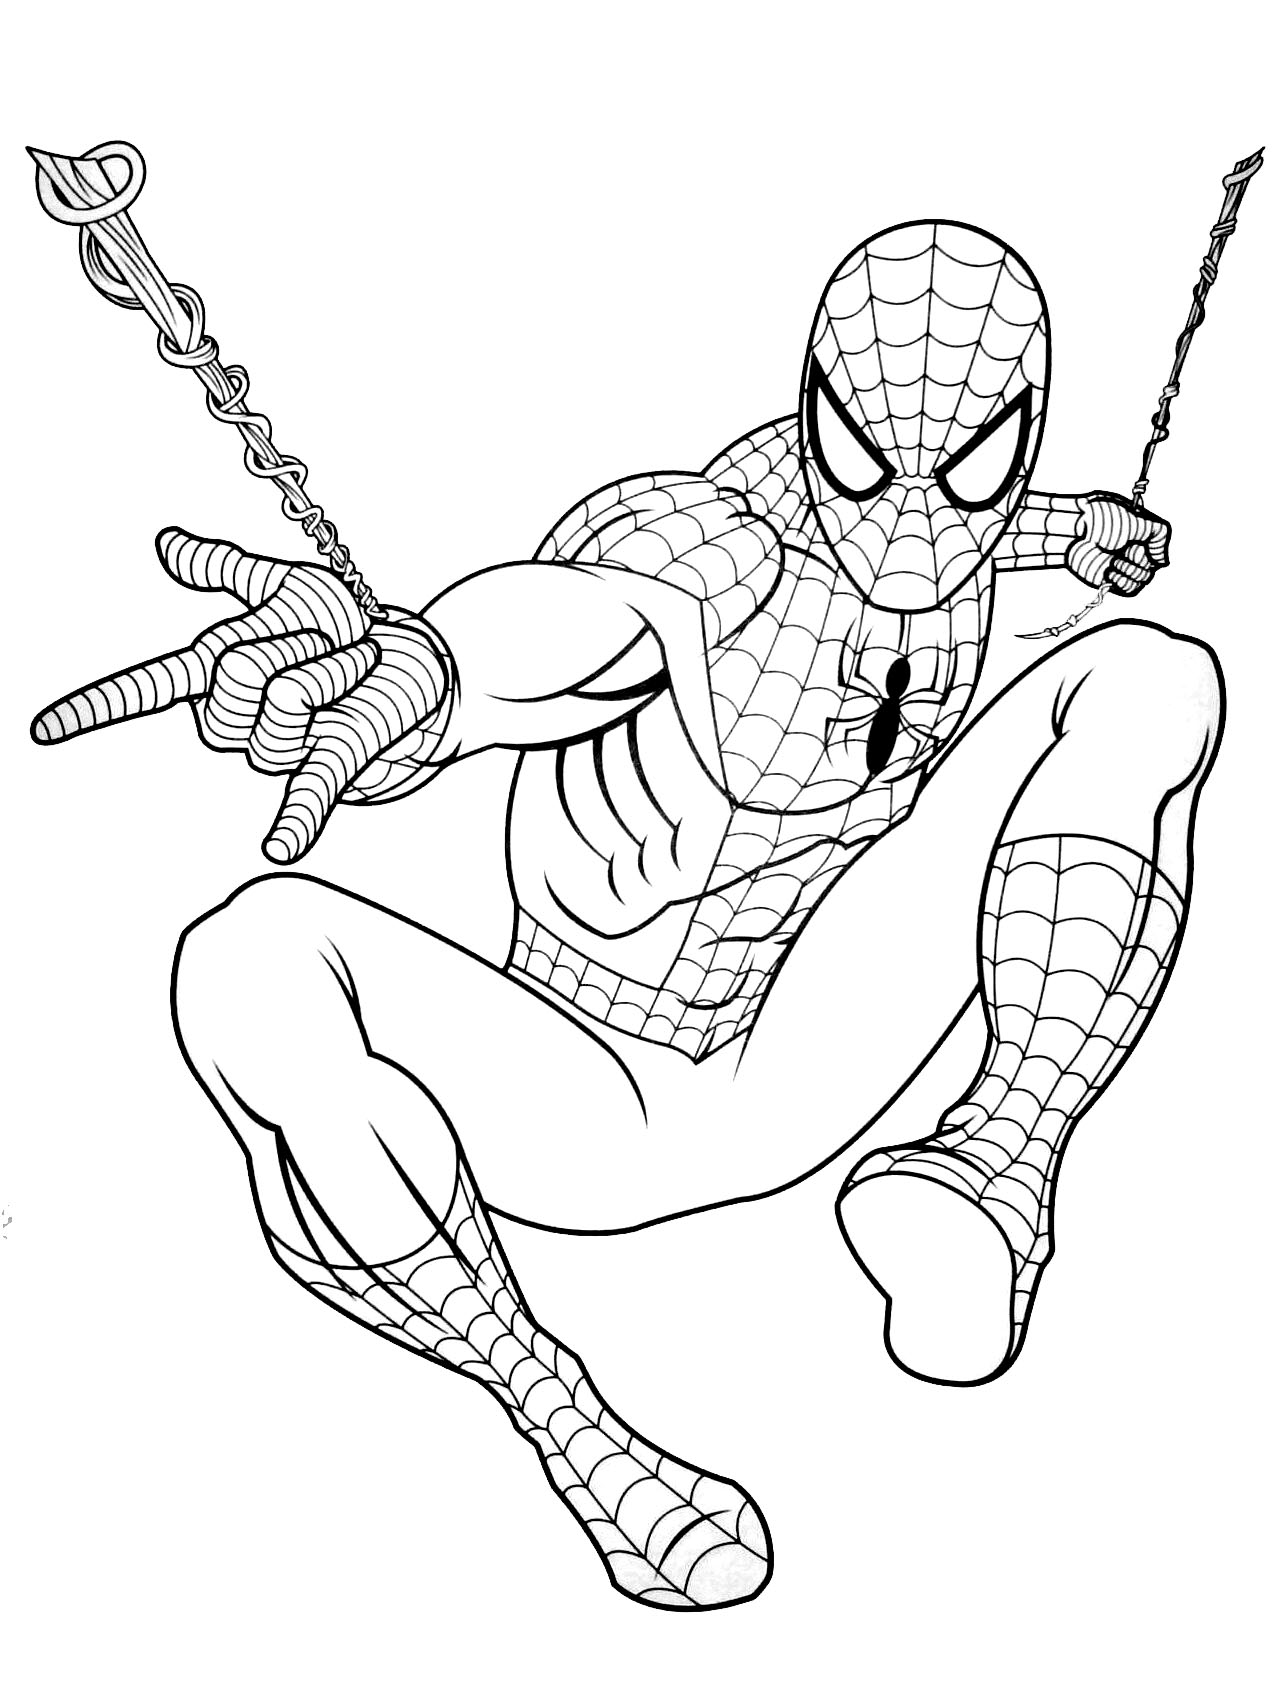 Spiderman to download for free - Spiderman Kids Coloring Pages